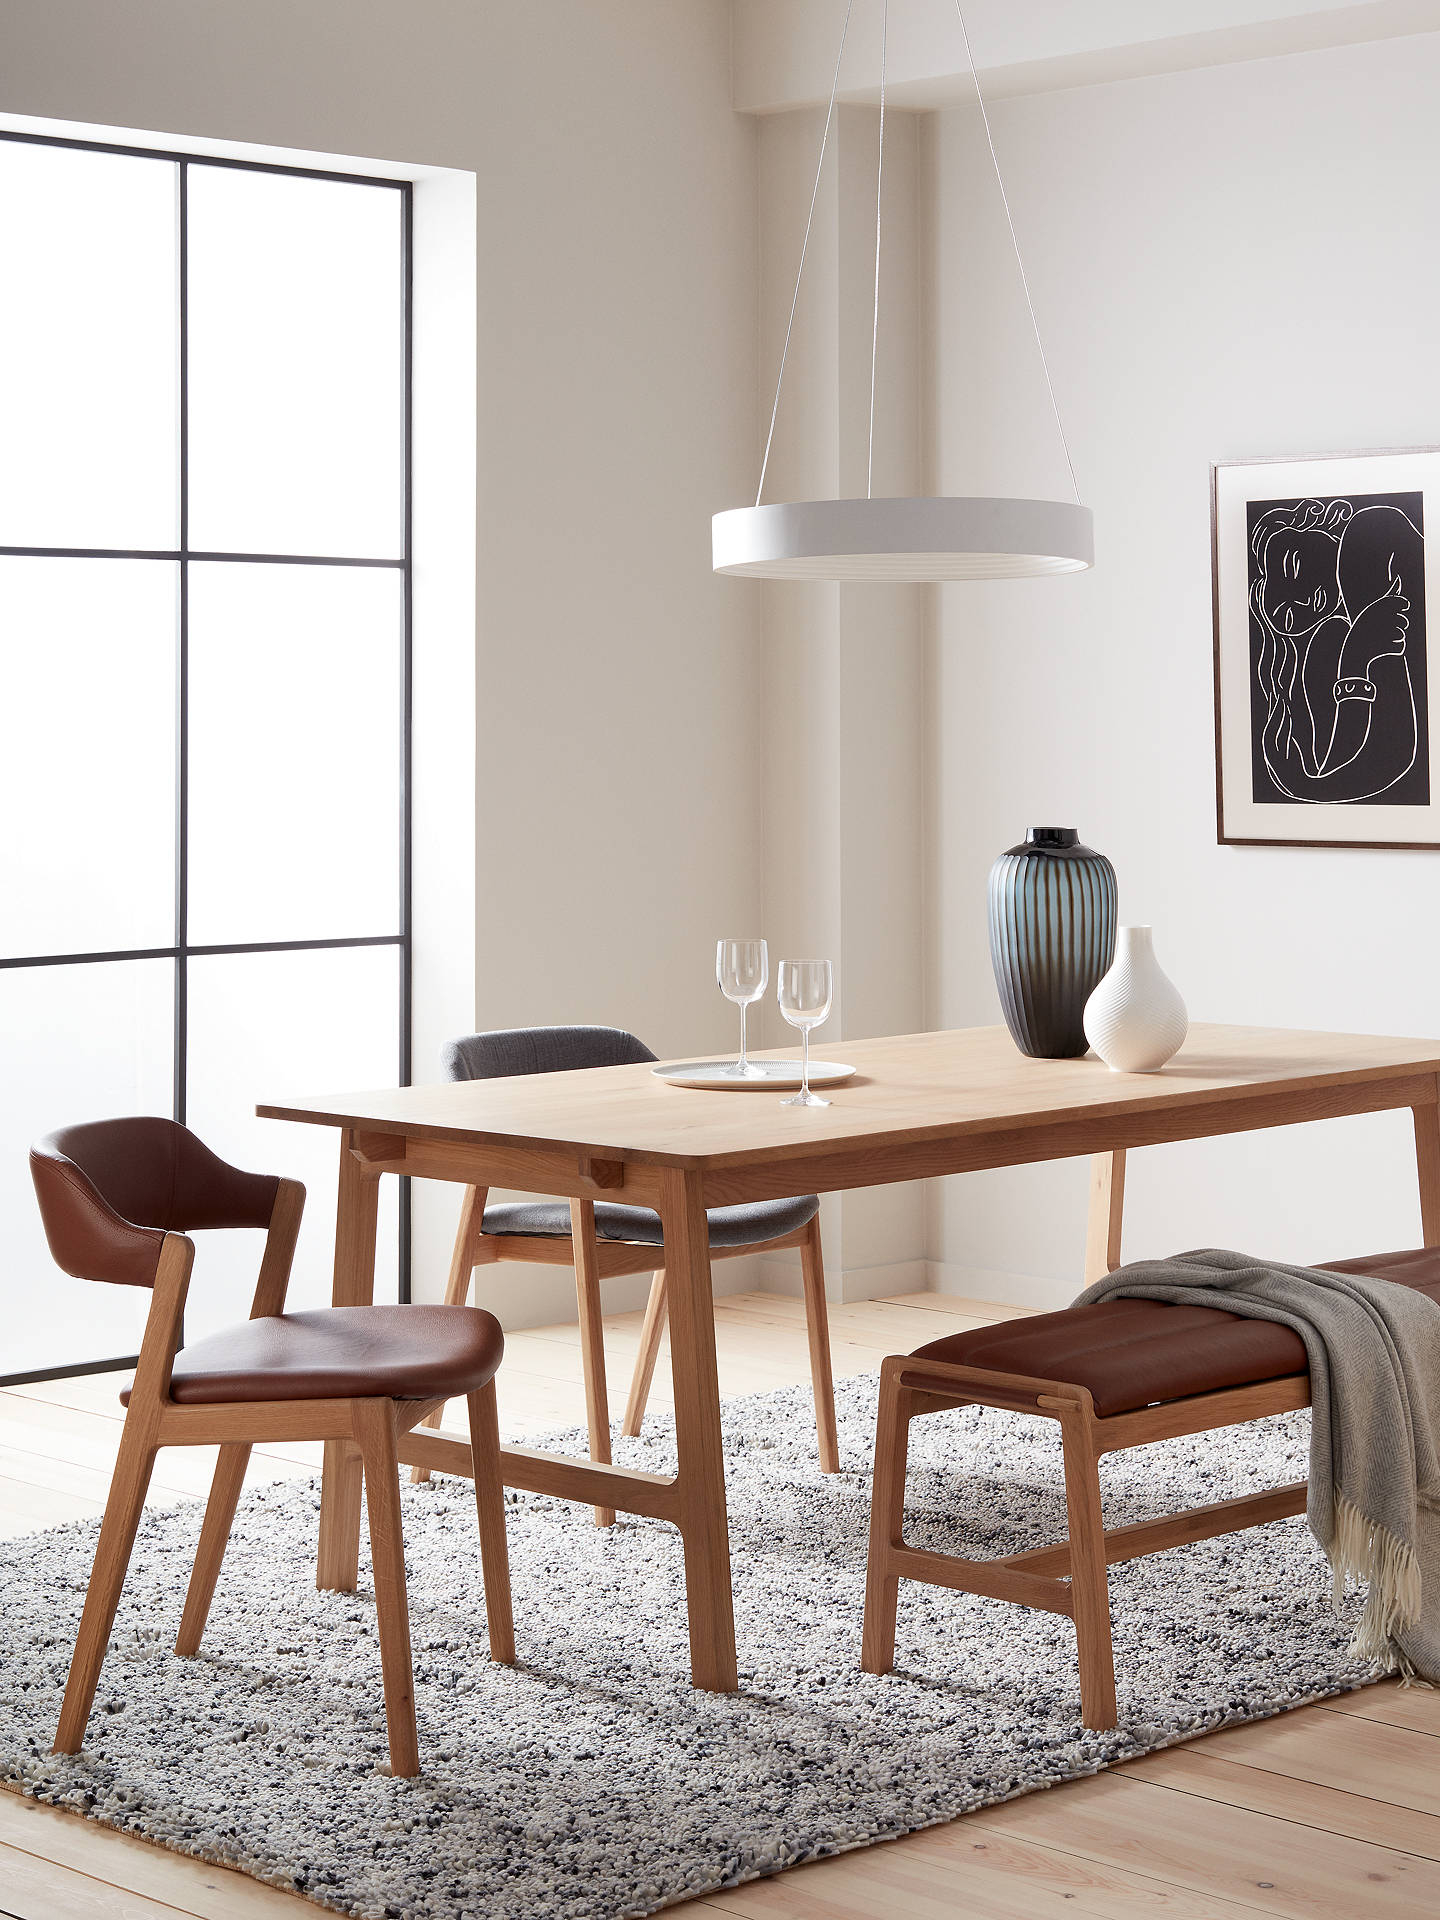 Most Up To Date John Lewis & Partners Santino 8 10 Seater Extending Dining Inside 8 Seater Wood Contemporary Dining Tables With Extension Leaf (View 15 of 30)